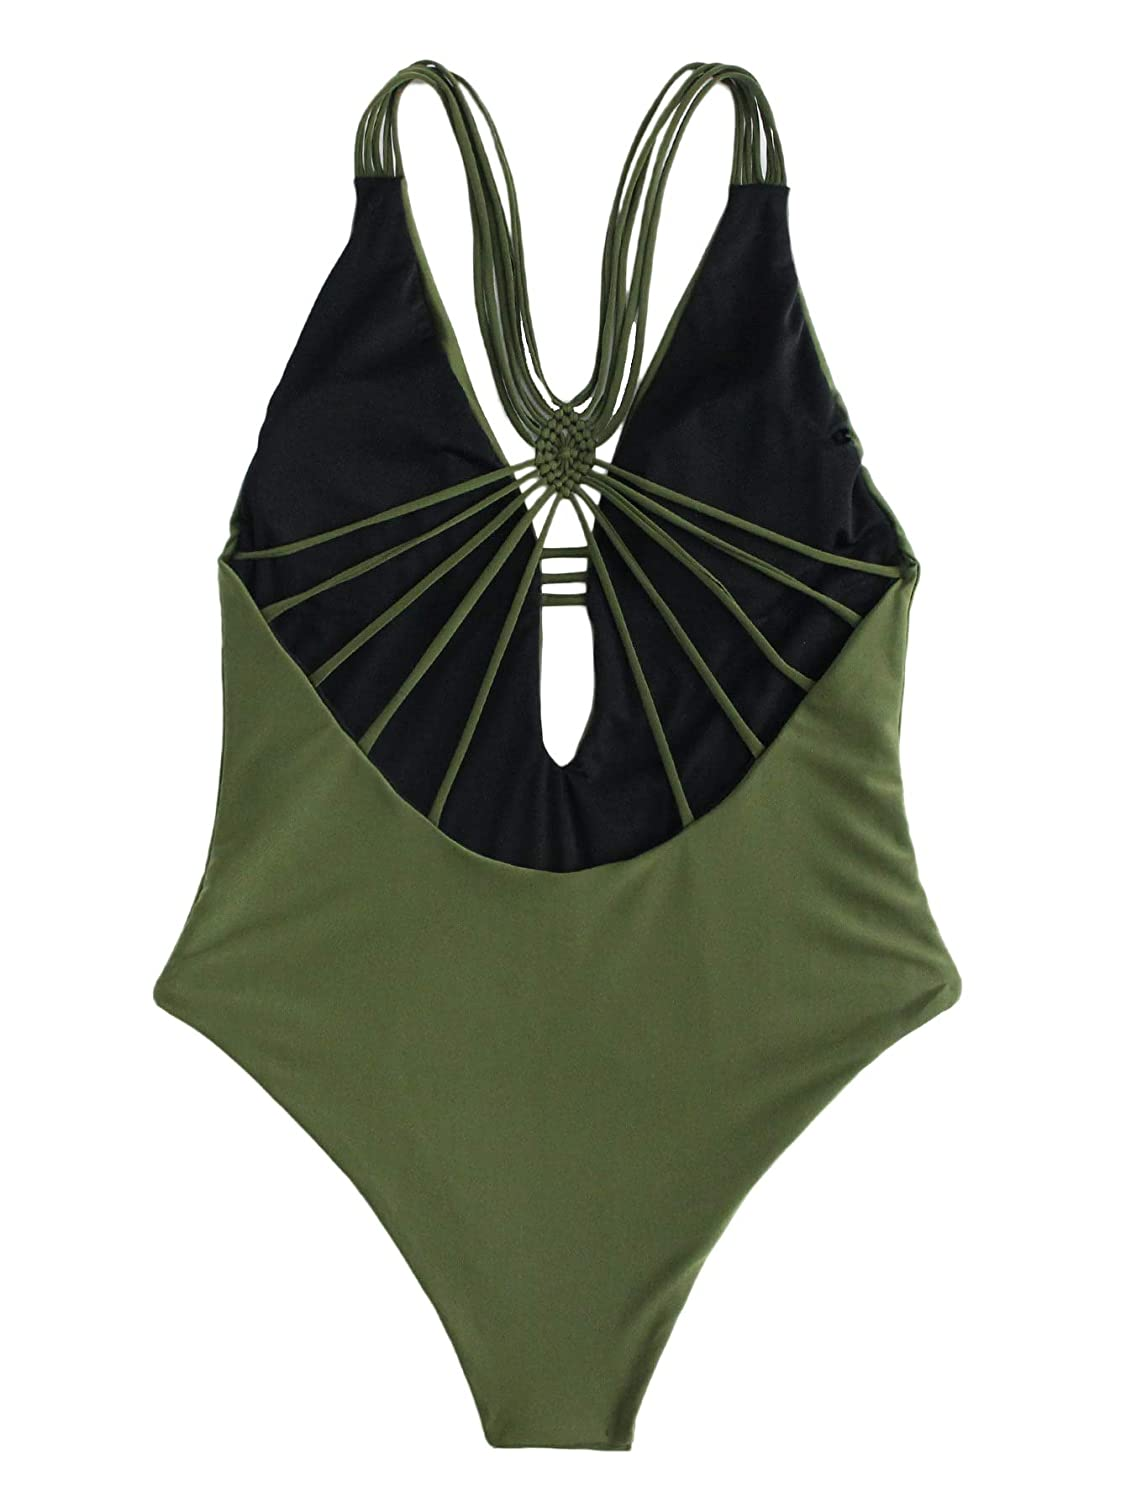 e5c573f233 SheIn Women's Deep Plunge Strappy One Piece Swimsuits Bathing Suits  Monokinis at Amazon Women's Clothing store: